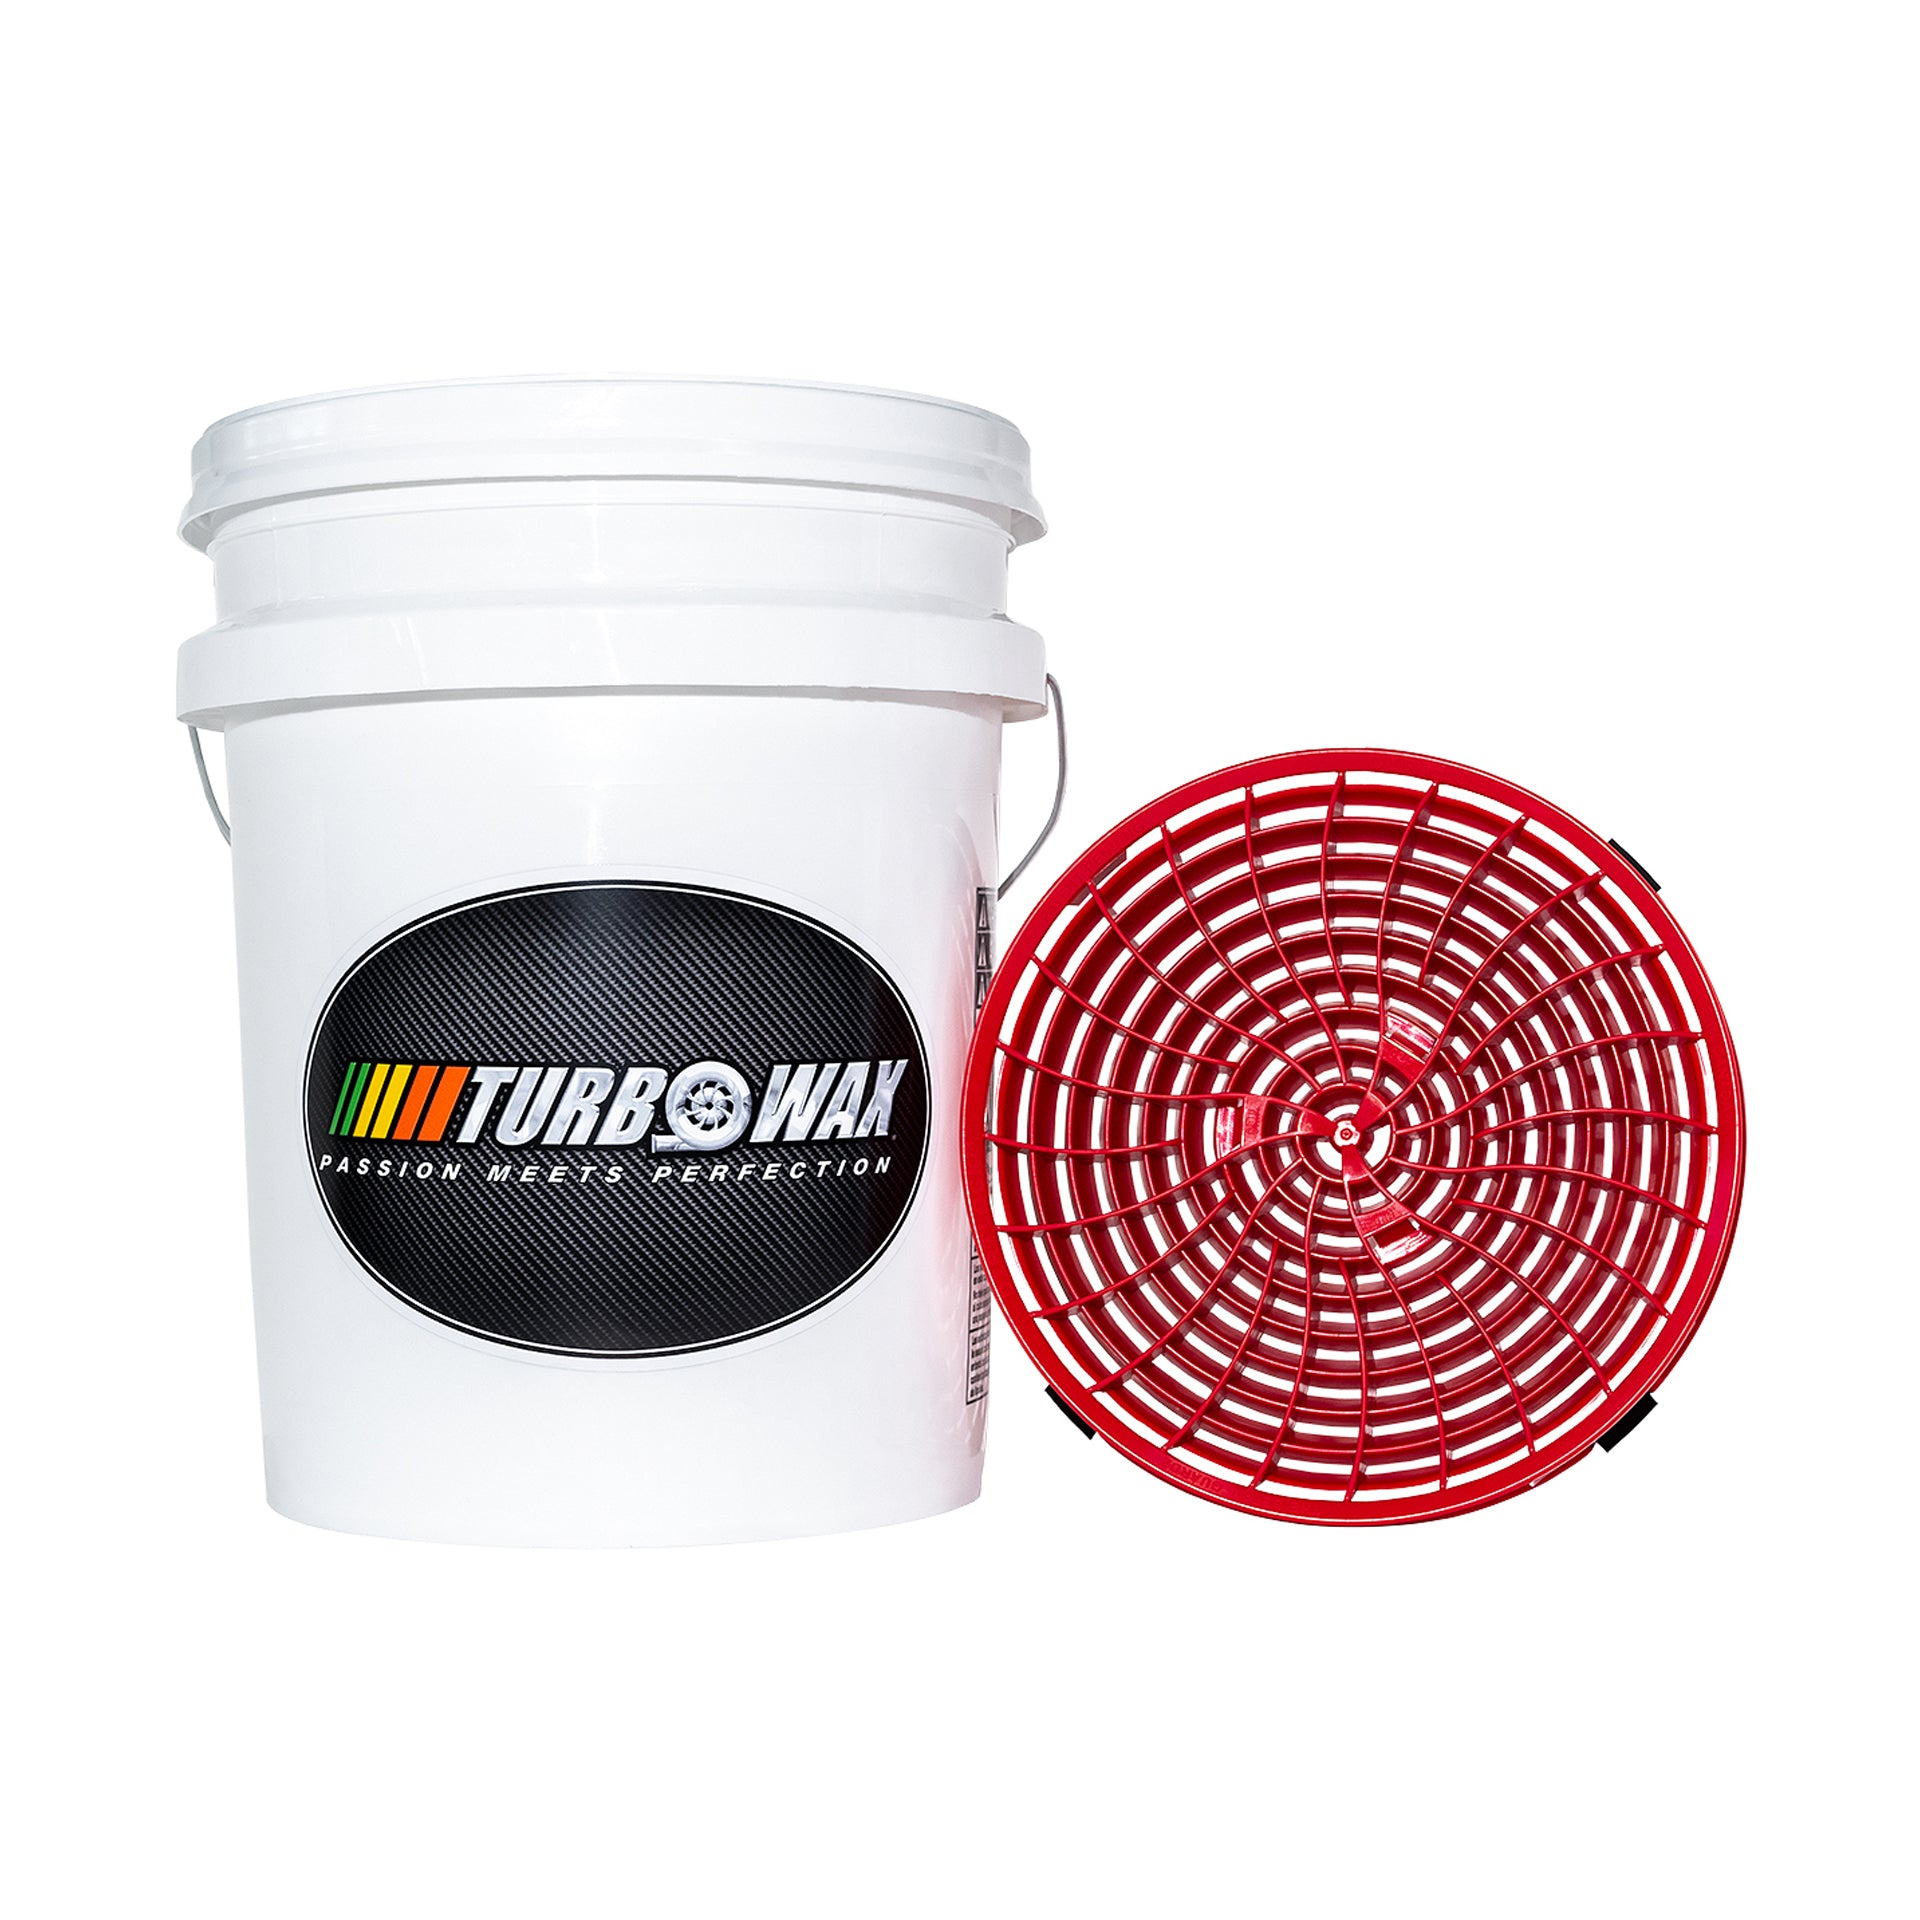 Turbo Wax Washing Bucket - Turbo Wax Store